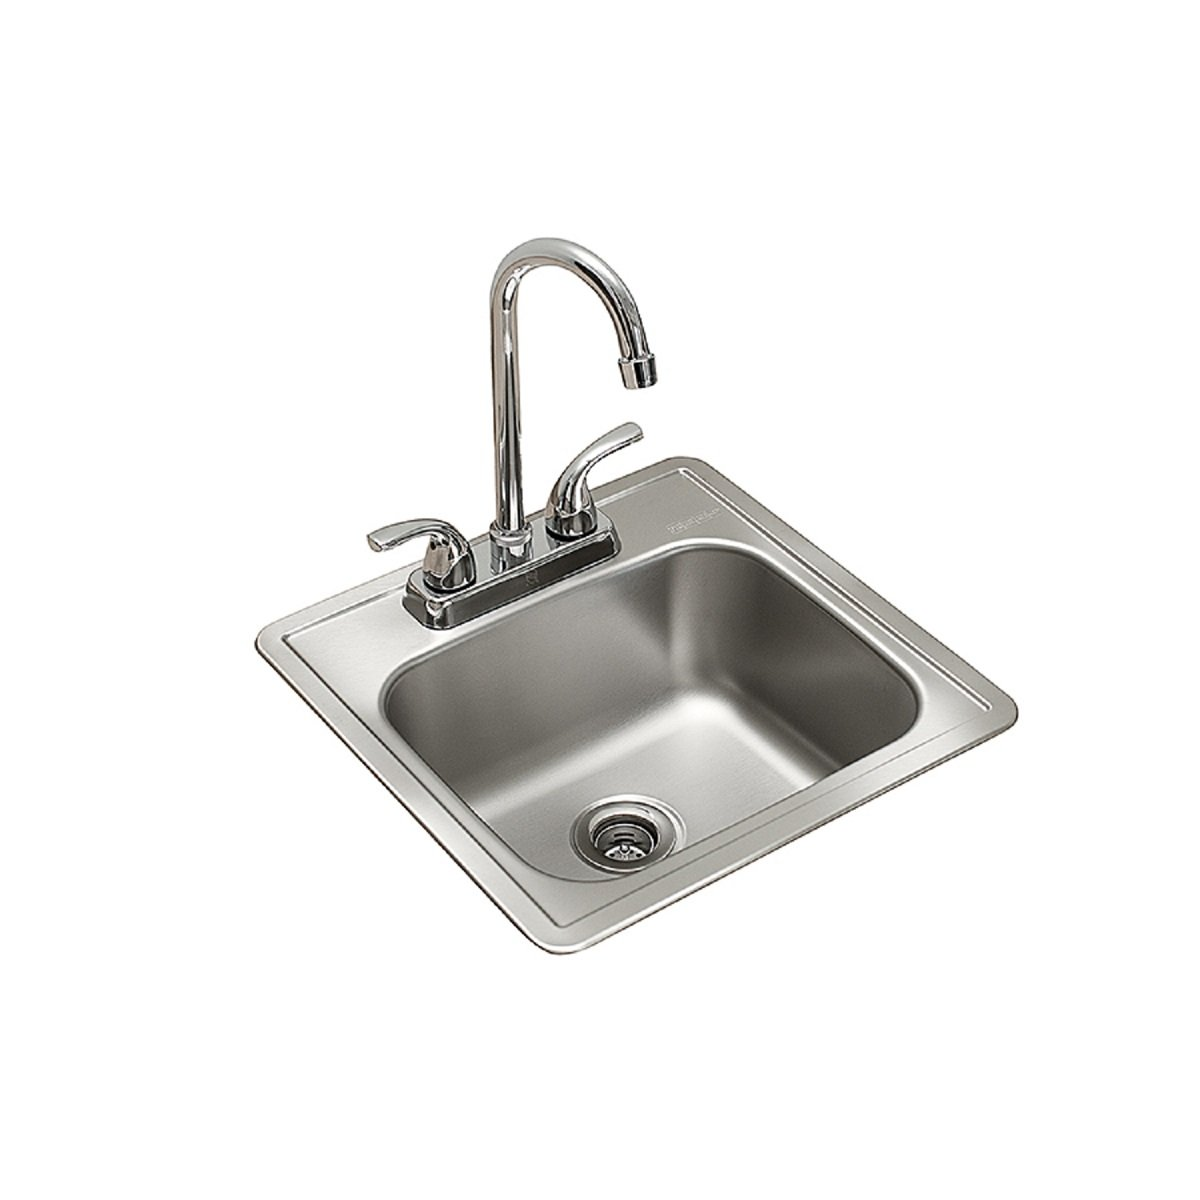 KINDRED Stainless Steel, Essentials All-in-One Kit 15 x 6-inch Deep Drop-in Bar or Utility Sink in Satin, FBFS602NKIT, Size by Kindred